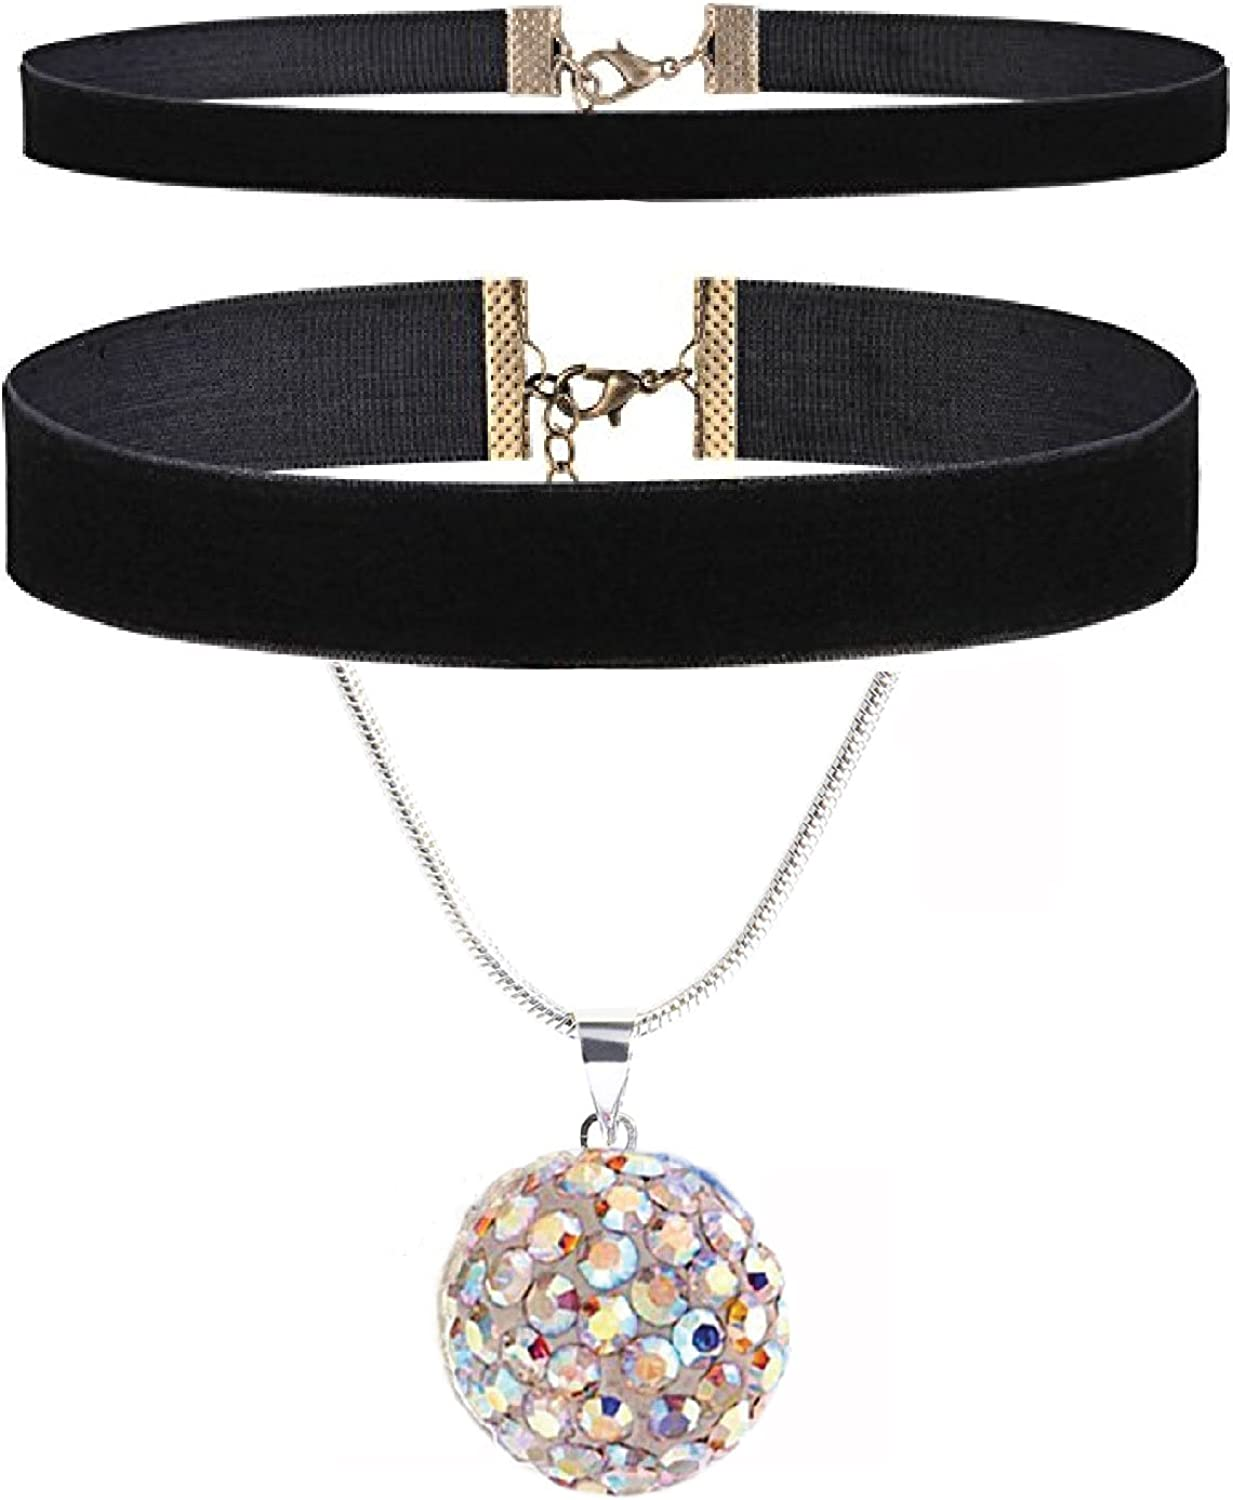 BodyJ4You 4PC Jewelry Gift Set Black Choker Aurora Pave Crystals Ferido Ball Necklace Stud Earrings